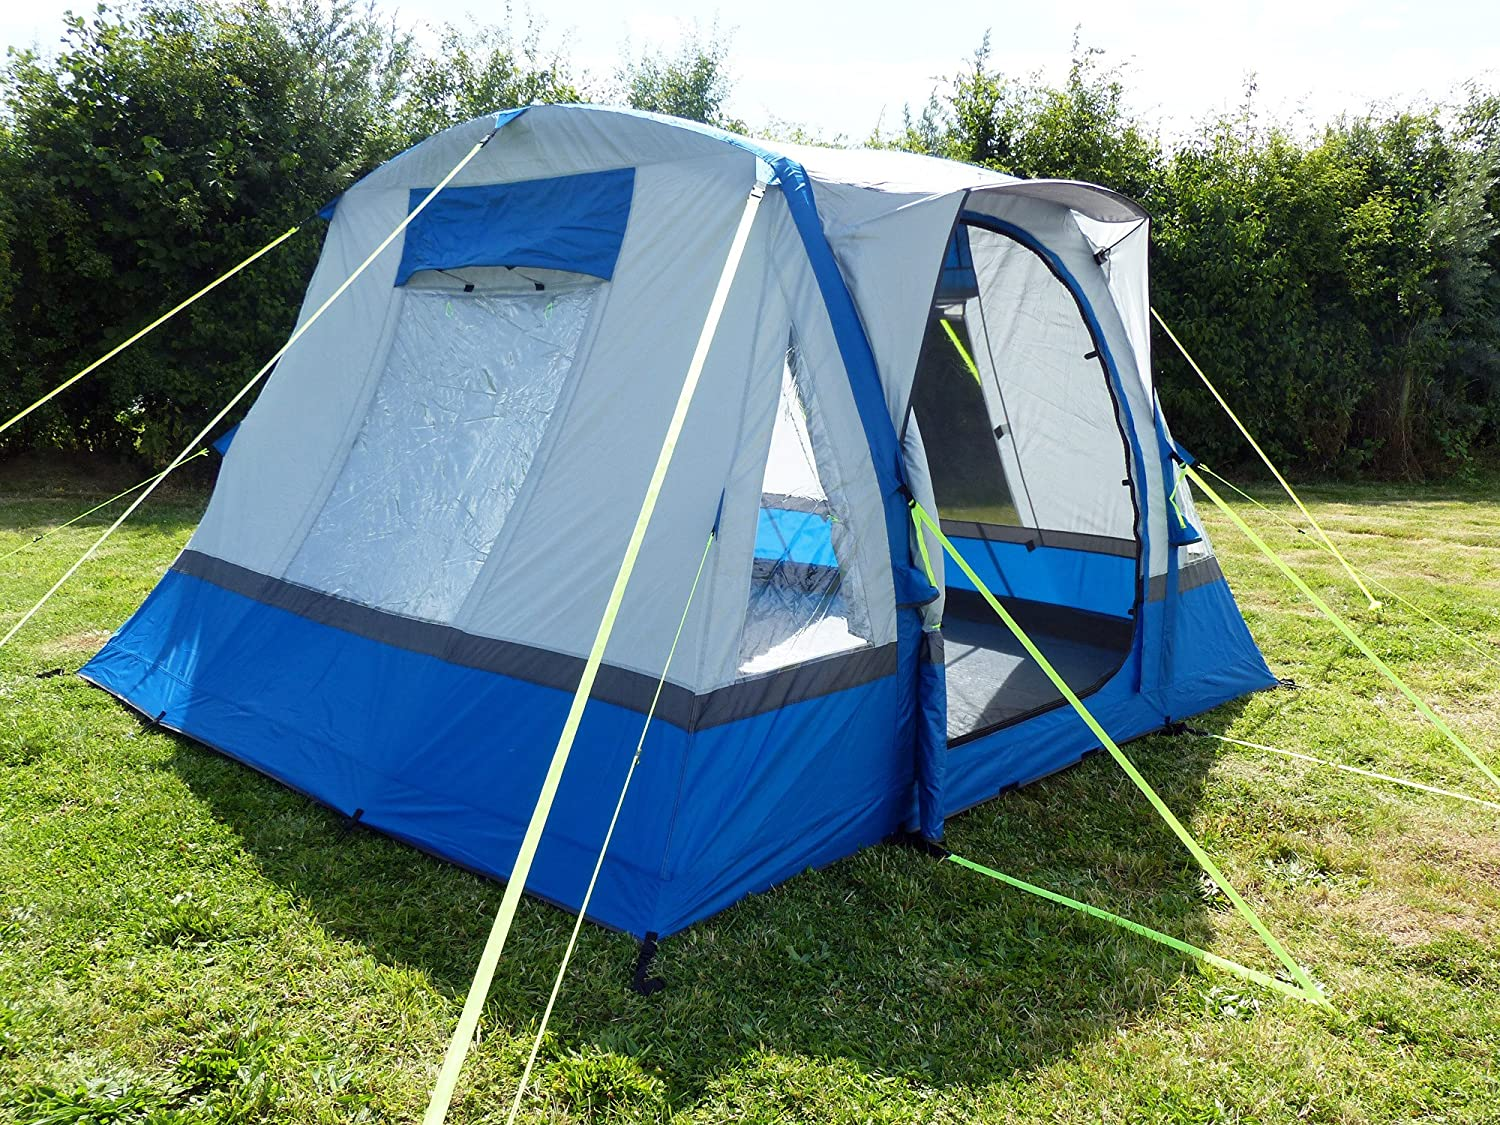 Olpro Waterproof Cubo Breeze  Outdoor Inflatable Campervan Awning available in Blue//Grey Size 240 cm